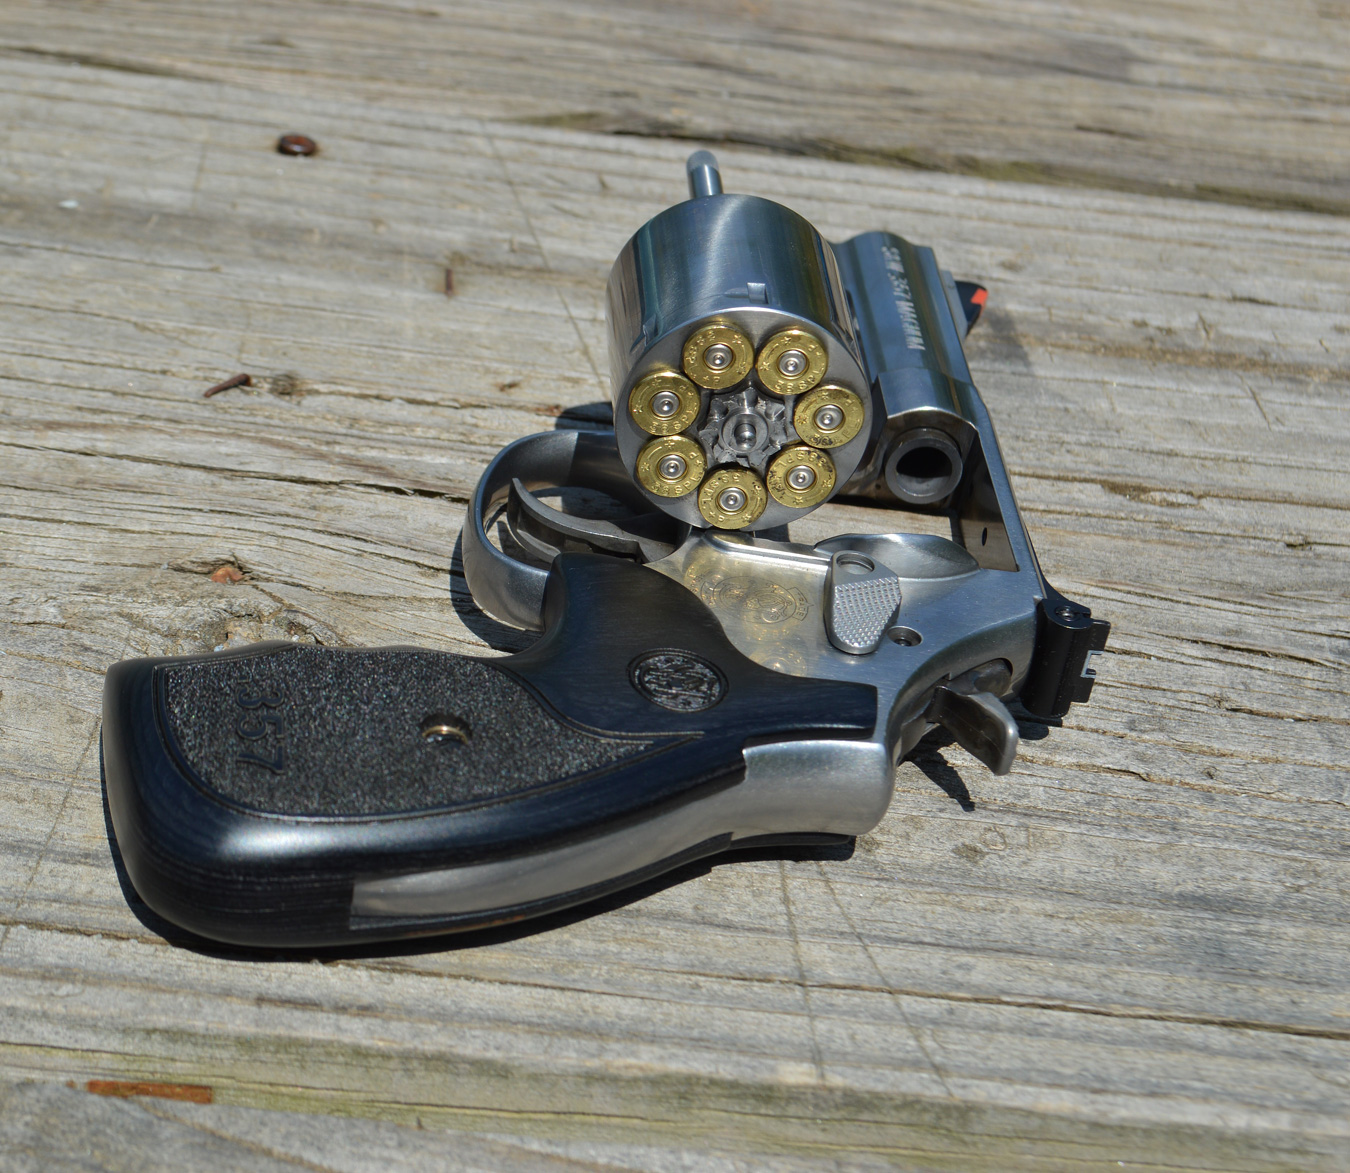 Smith and Wesson 686 plus revolver with open loaded cylinder